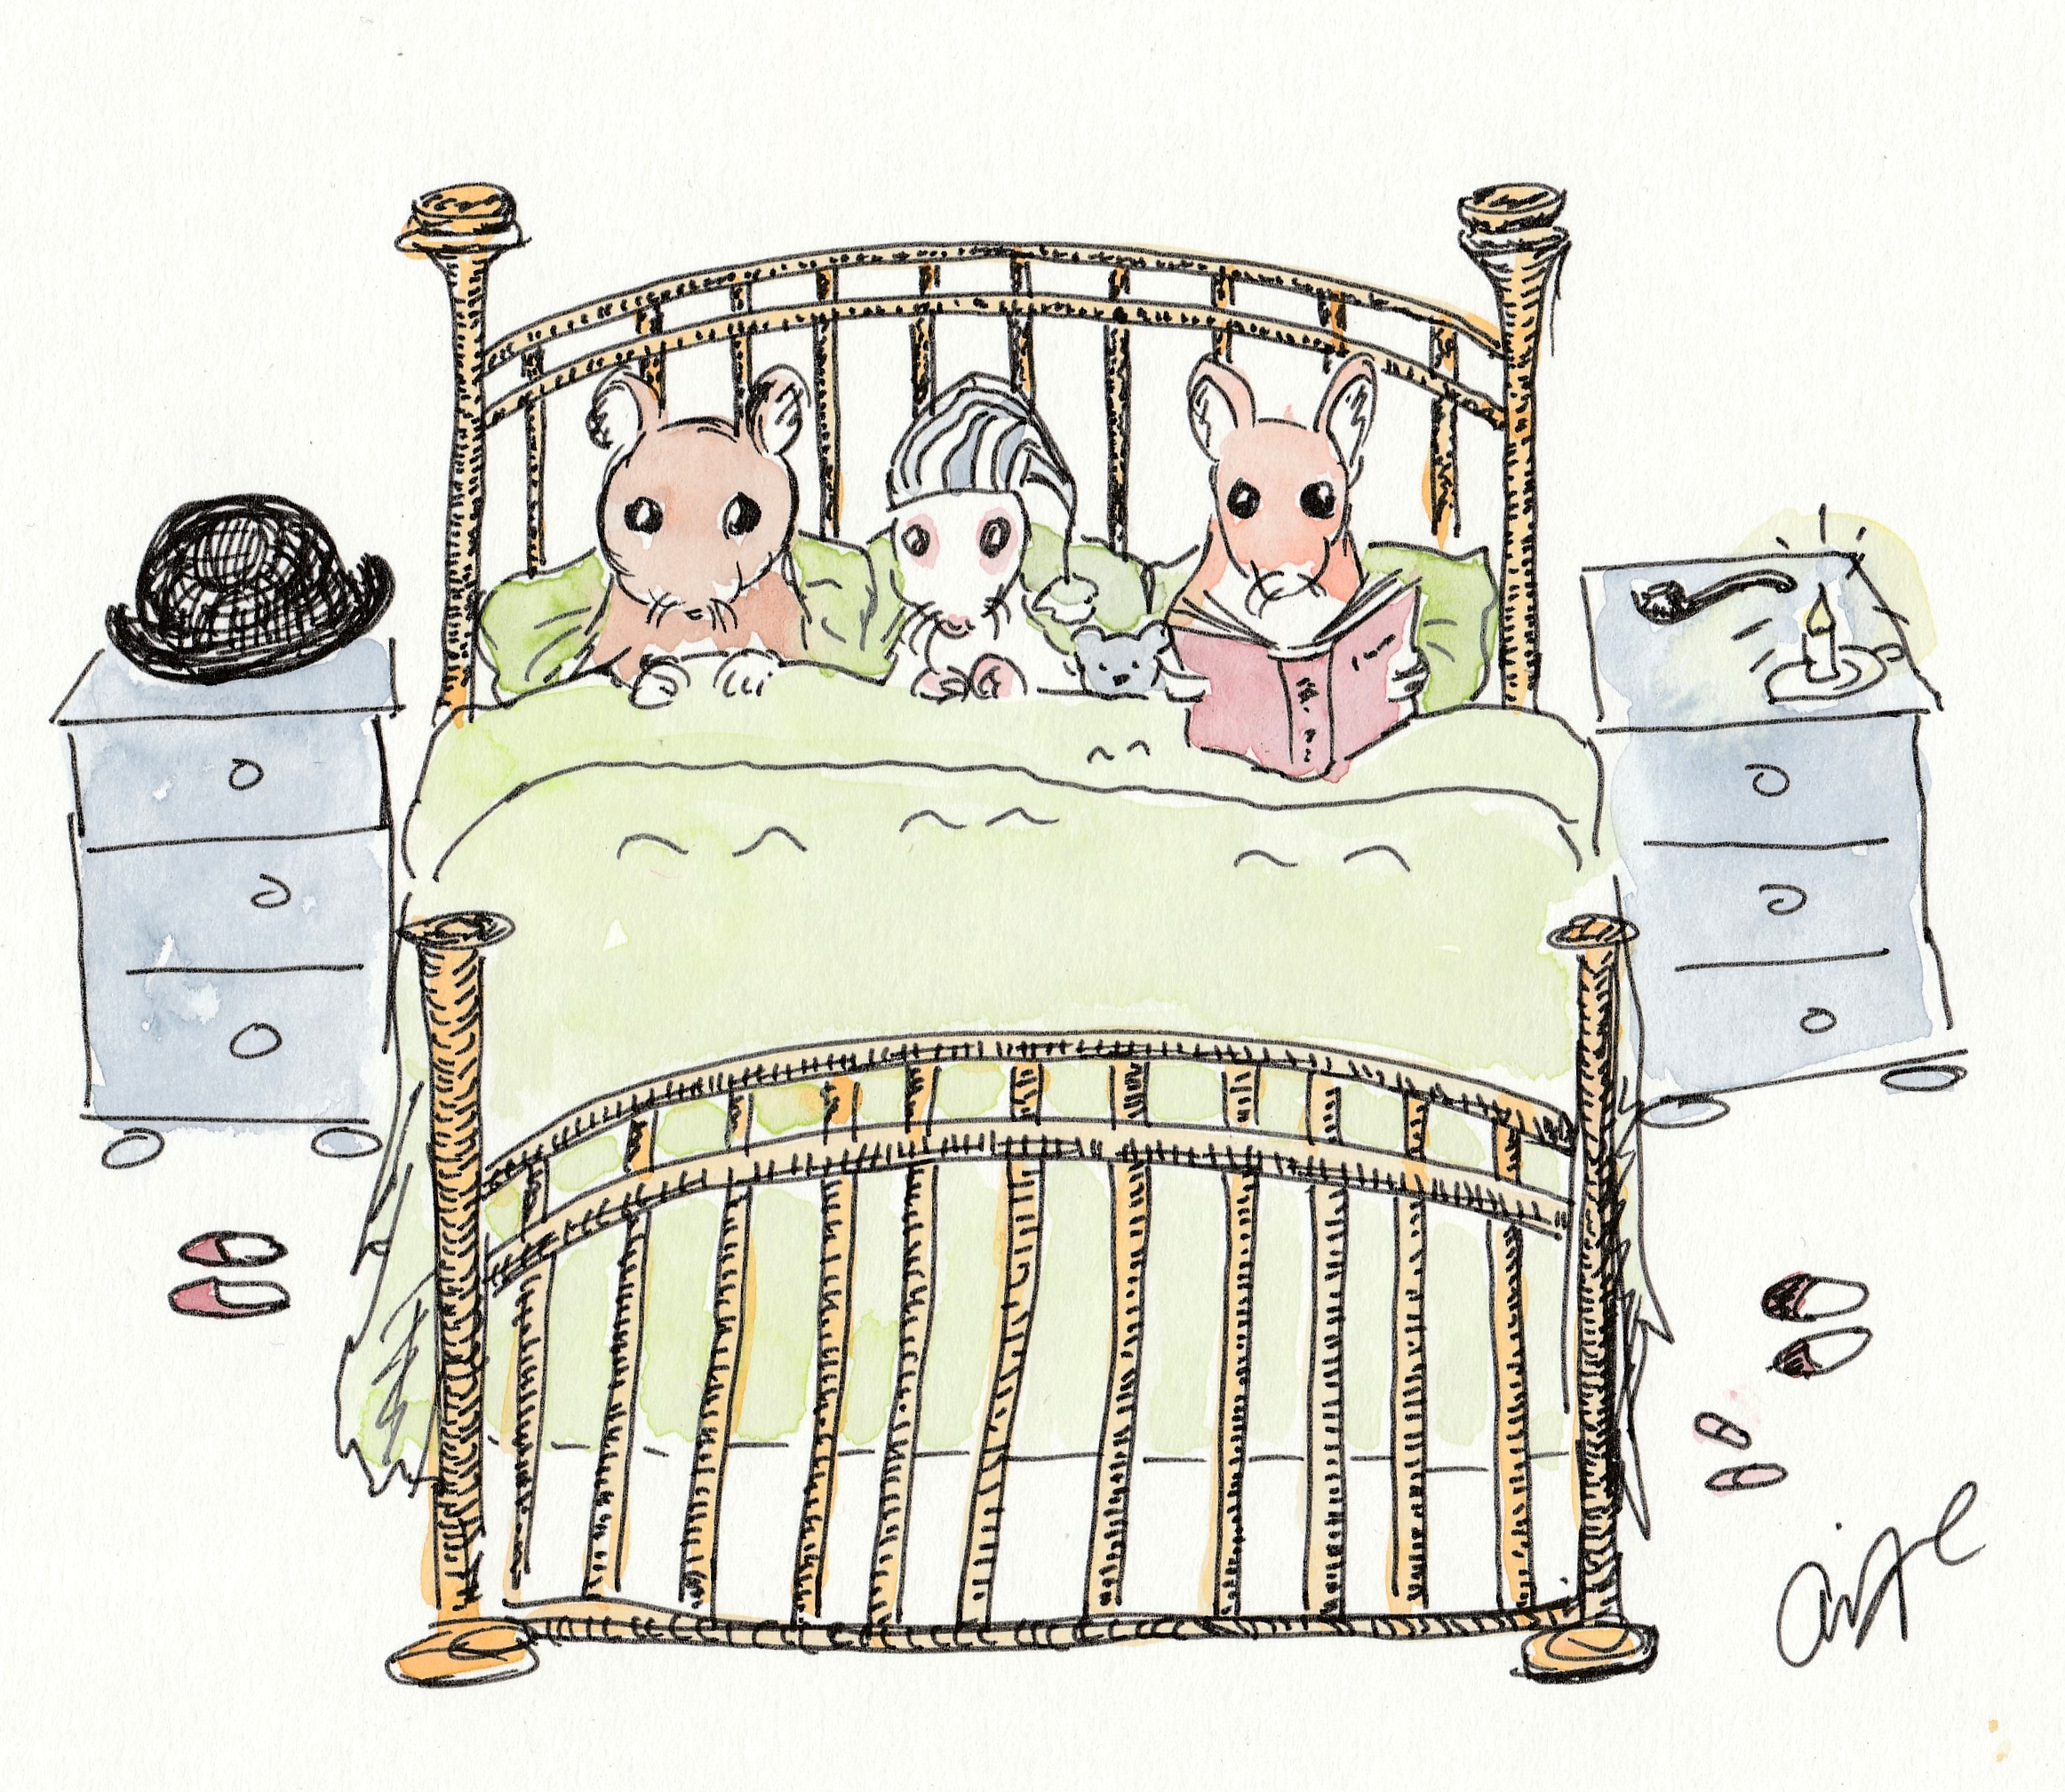 Three mice in bed by Aoife McCann